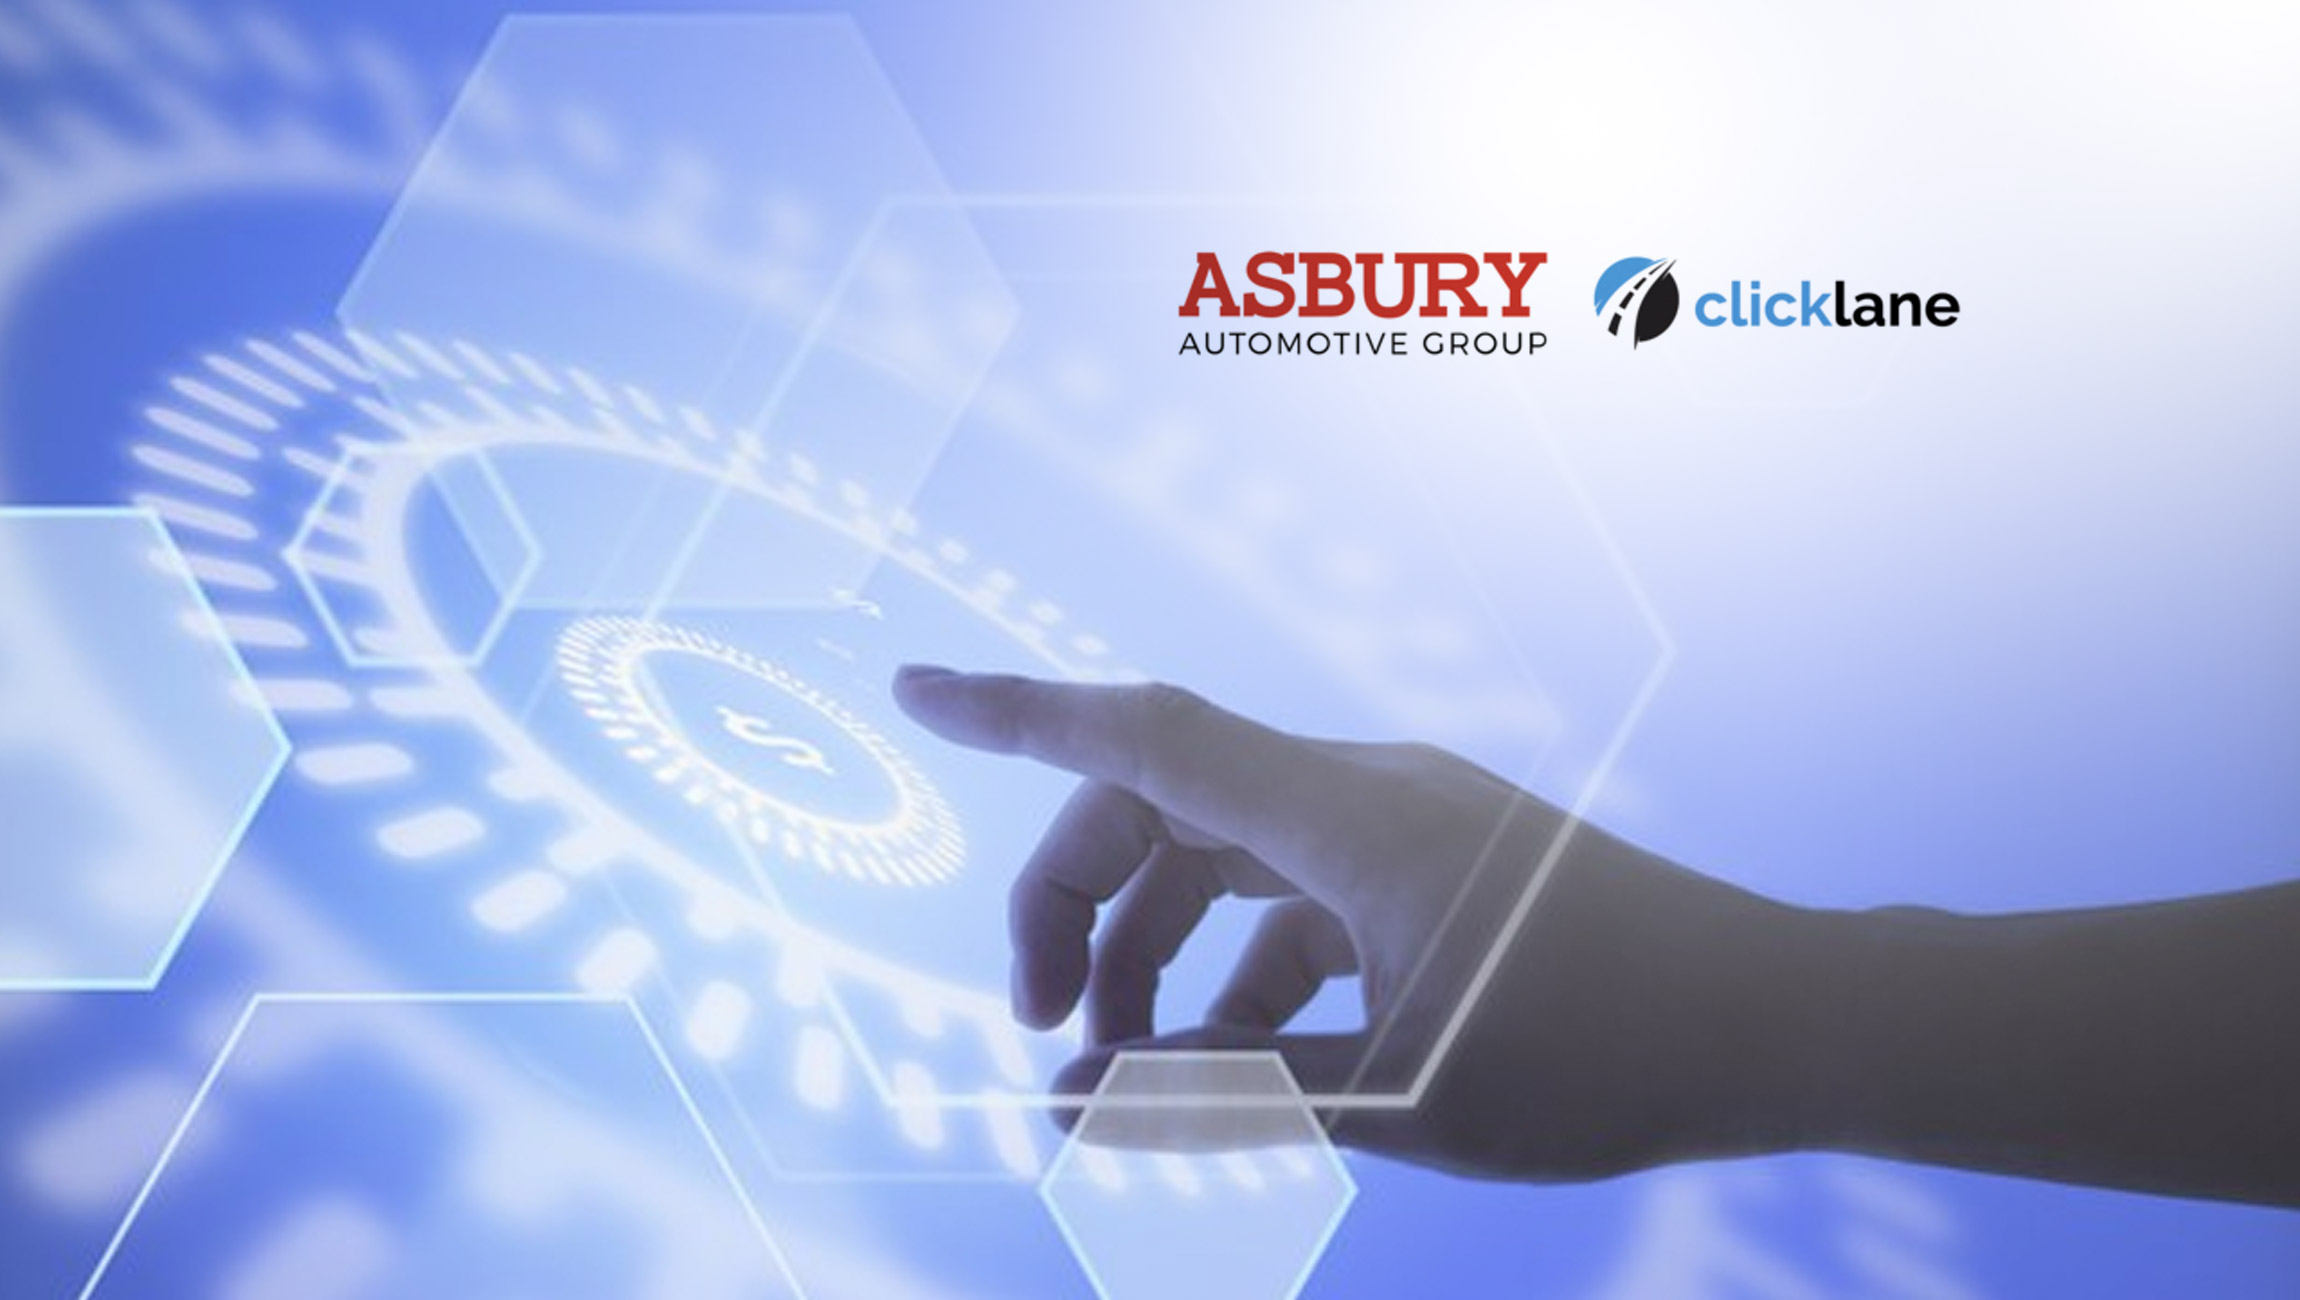 Asbury-Automotive-Group-Enhances-Clicklane-with-Addition-of-Accessories-and-Customization-Platform-Powered-by-Insignia-Group